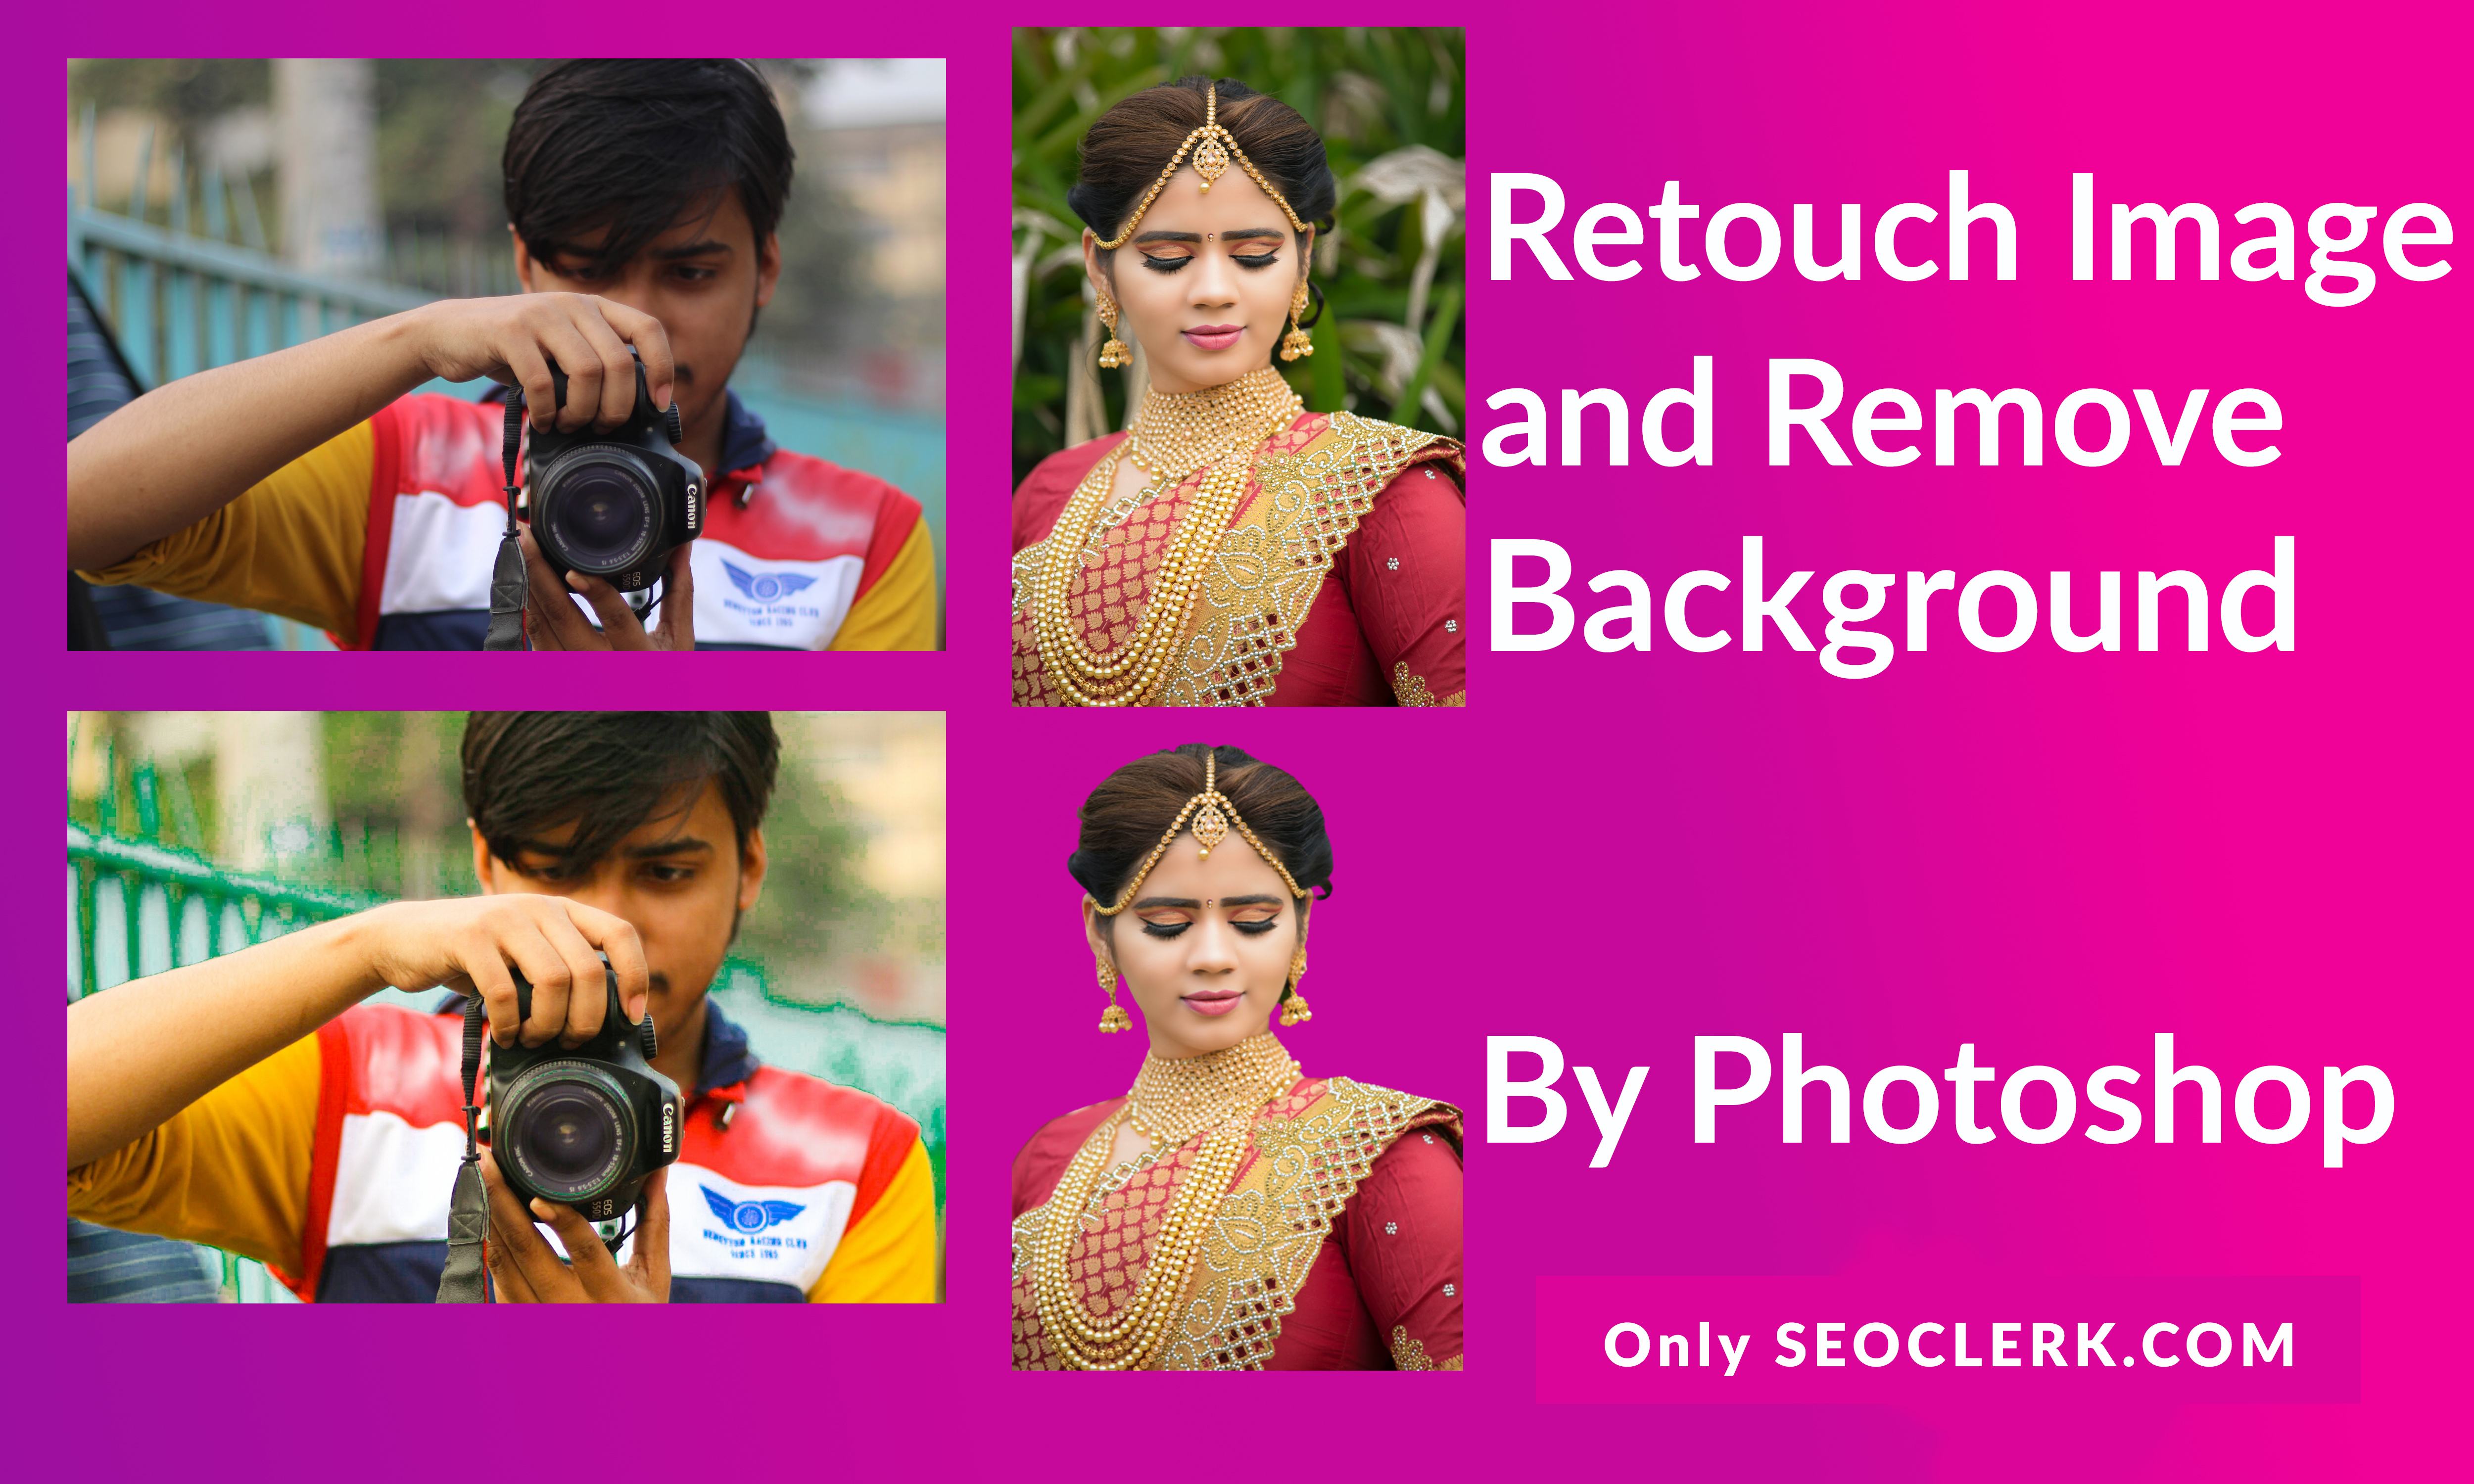 Retouch & Remove Image background in 1minute